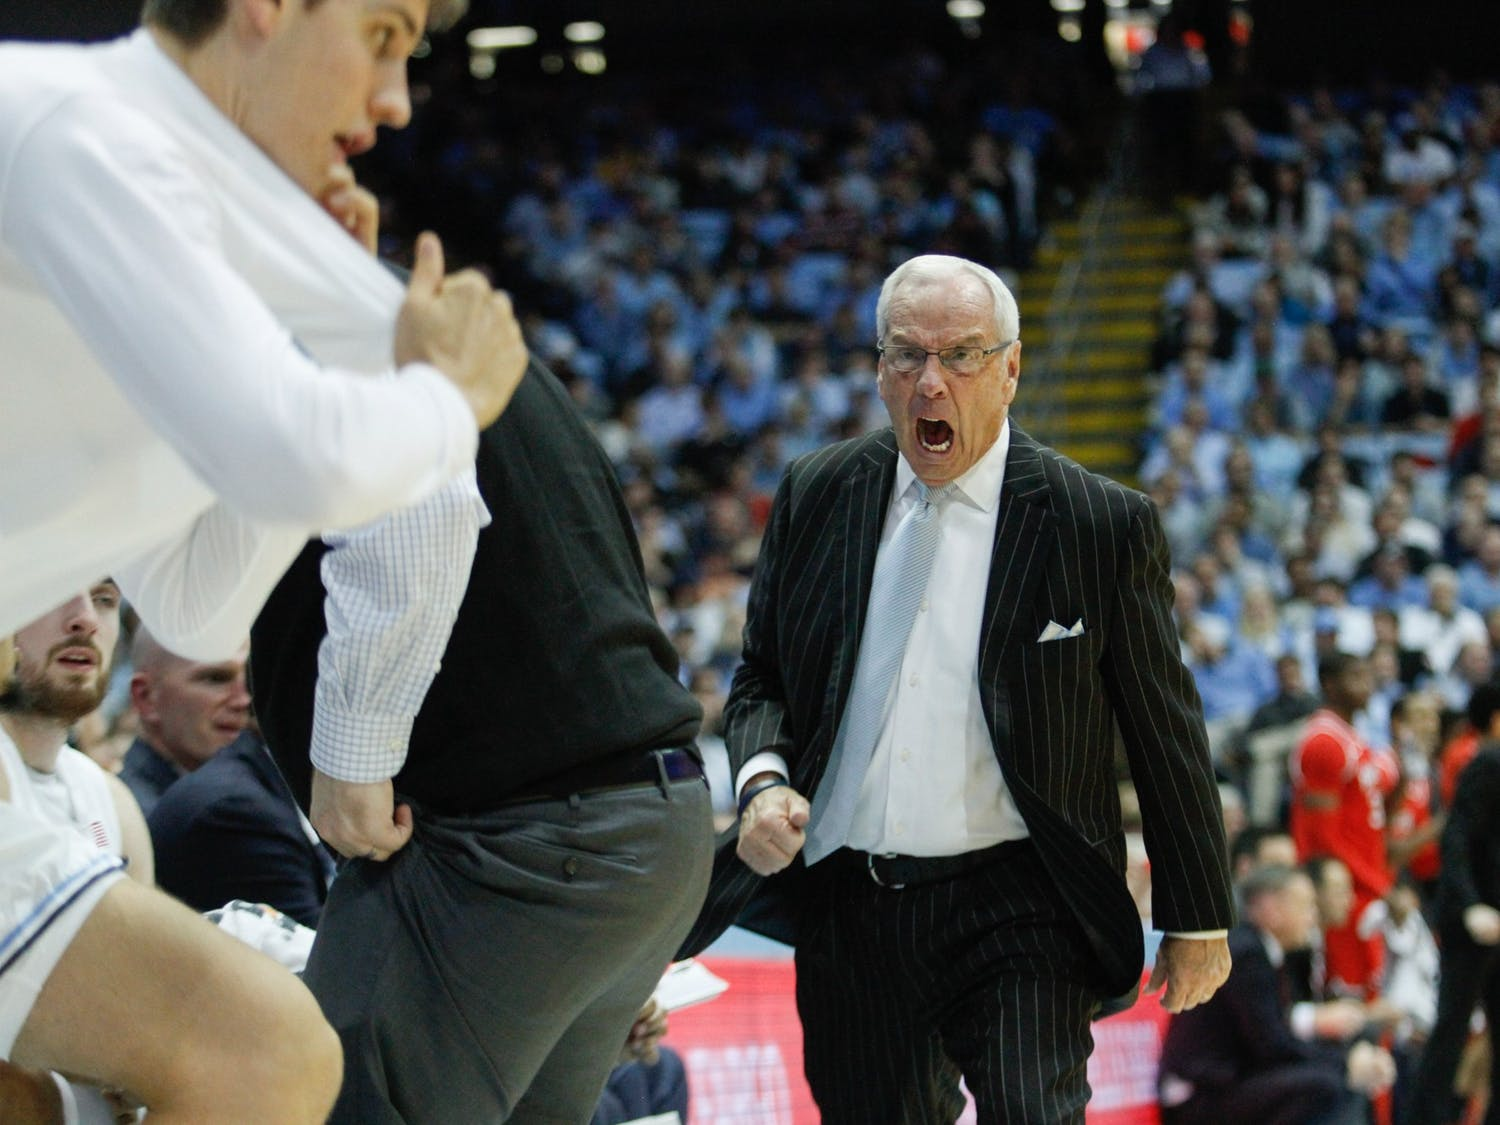 UNC head coach Roy Williams yells at his team and benches all of UNC's starters in the game against Ohio State in the Smith Center on Wednesday, Dec. 4, 2019. UNC lost to Ohio State 74-49.